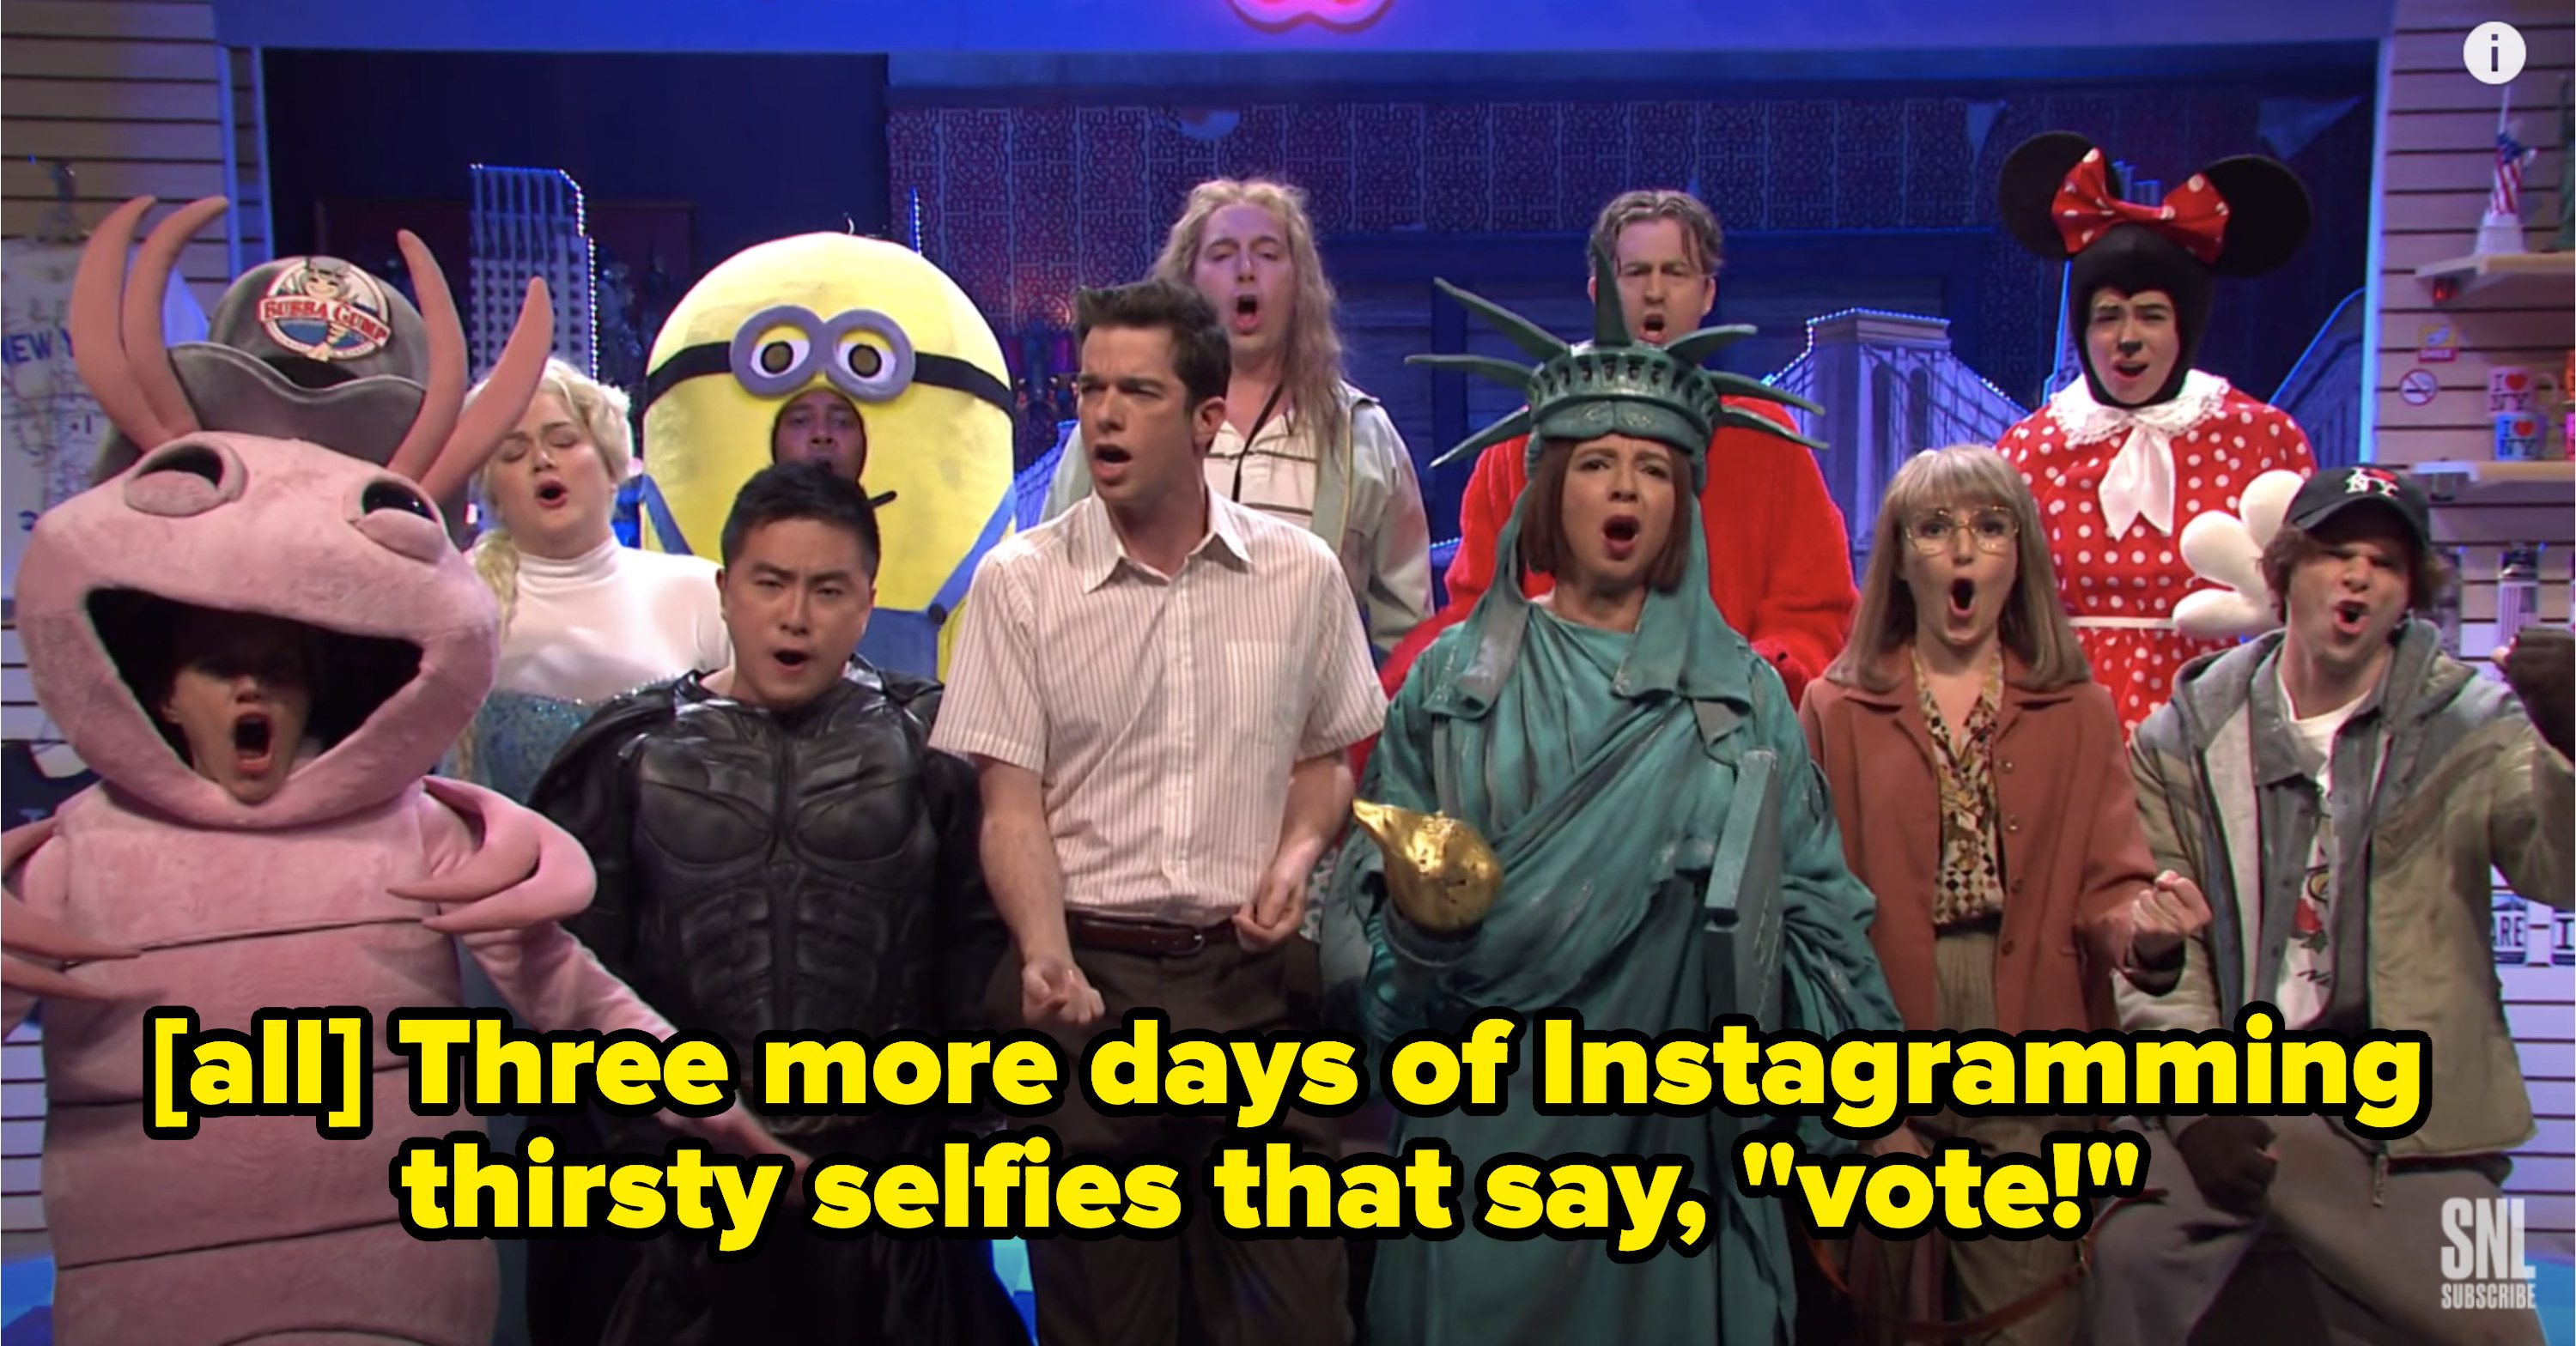 """All singing, 'Three more days of Instagramming thirsty selfies that say, 'vote'!"""""""